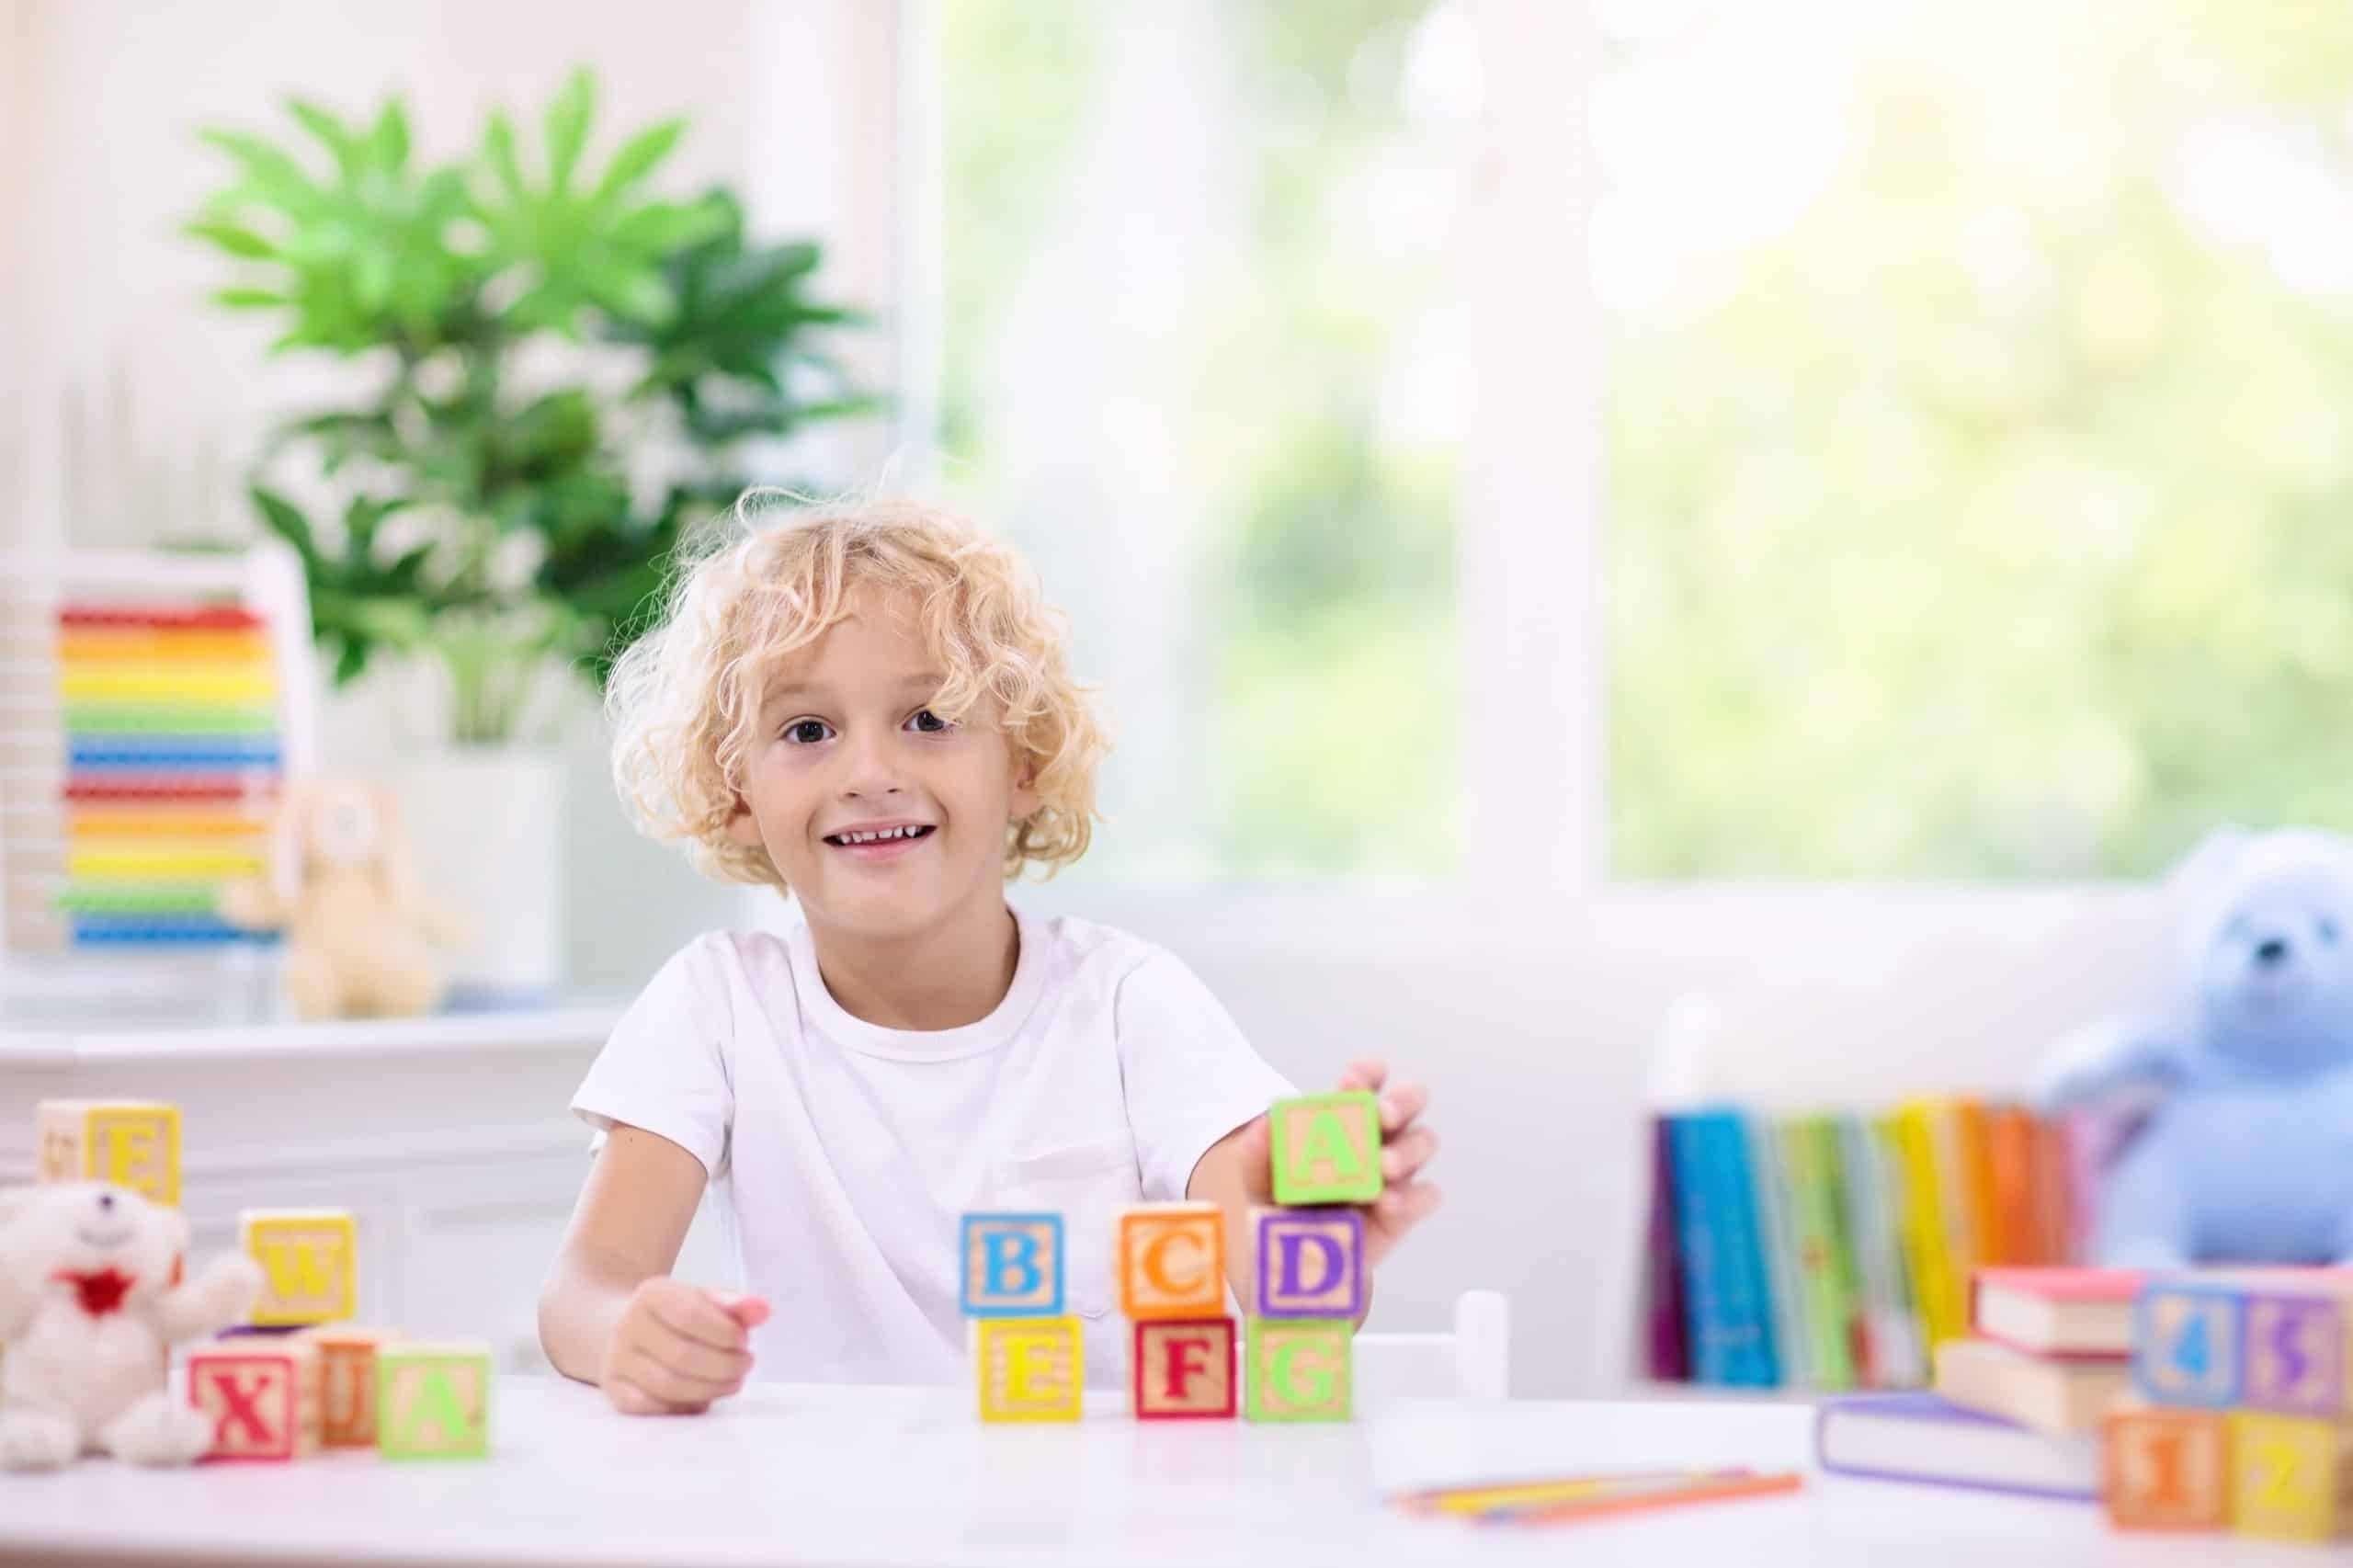 Child learning letters. Kid with wooden abc blocks; home library